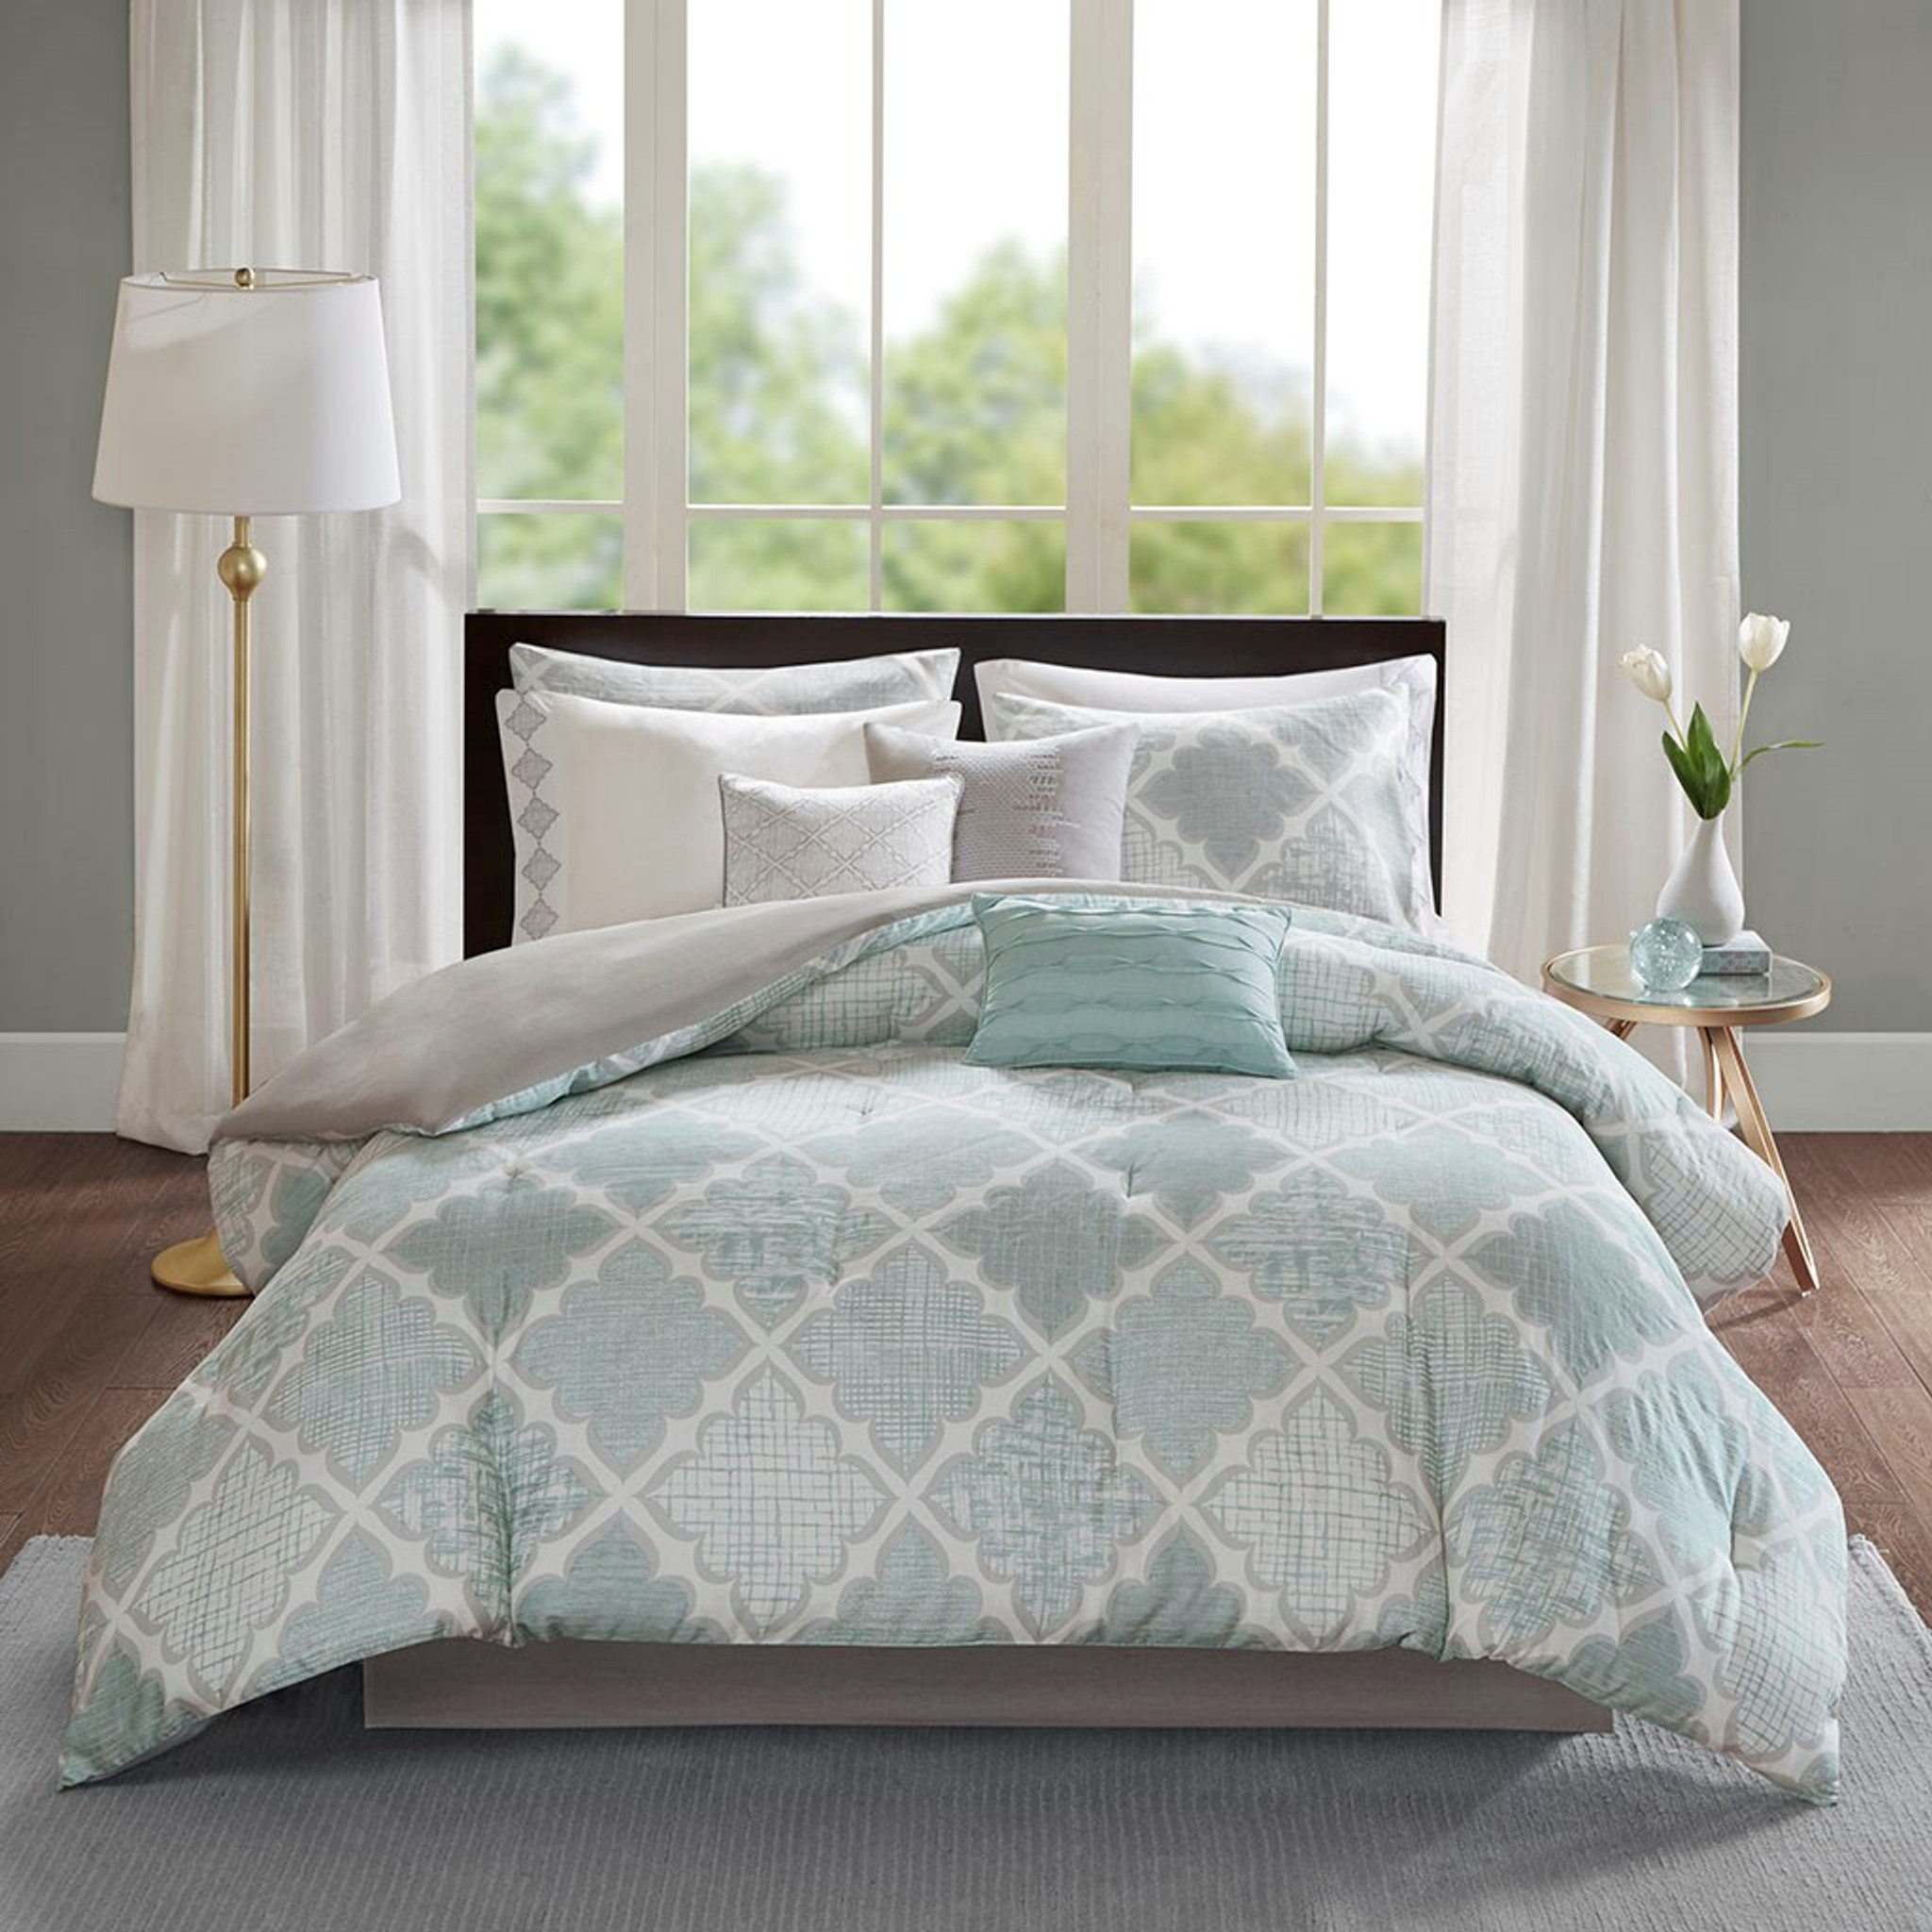 Cadence Aqua 9 Piece King Comforter Set Caron S Beach House